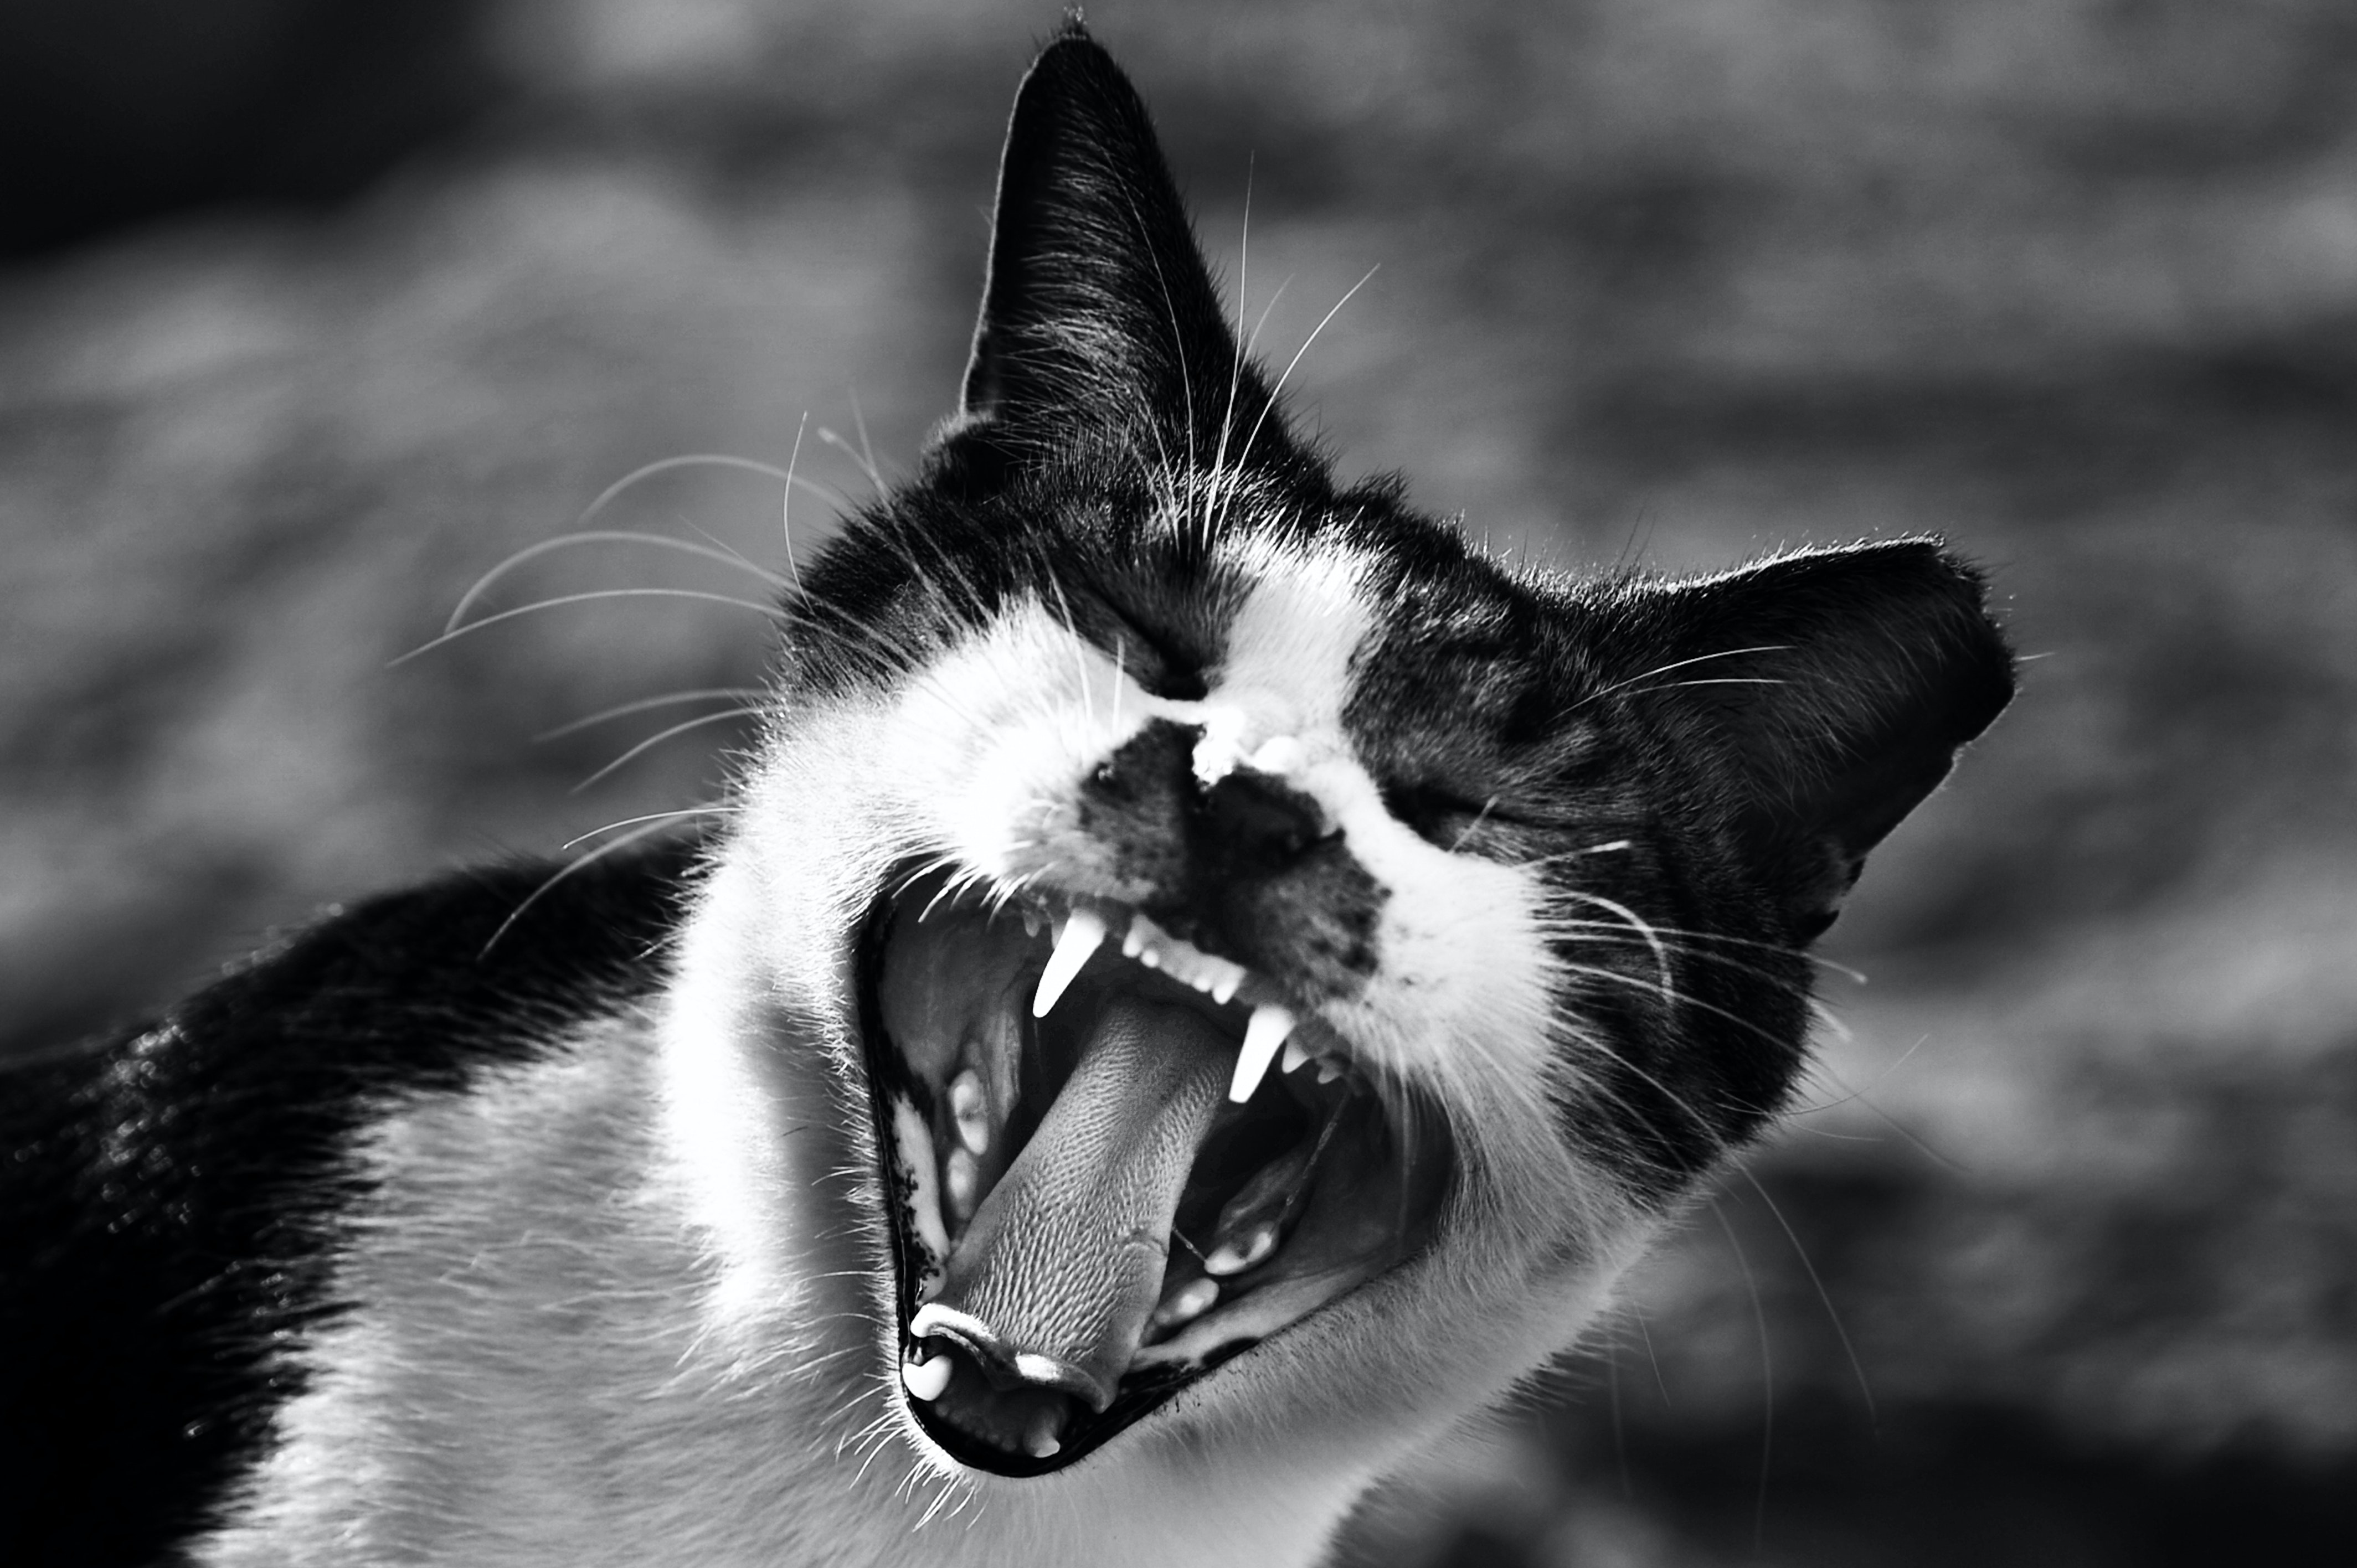 Angry Animals Google Search: 500+ Beautiful Angry Face Photos · Pexels · Free Stock Photos